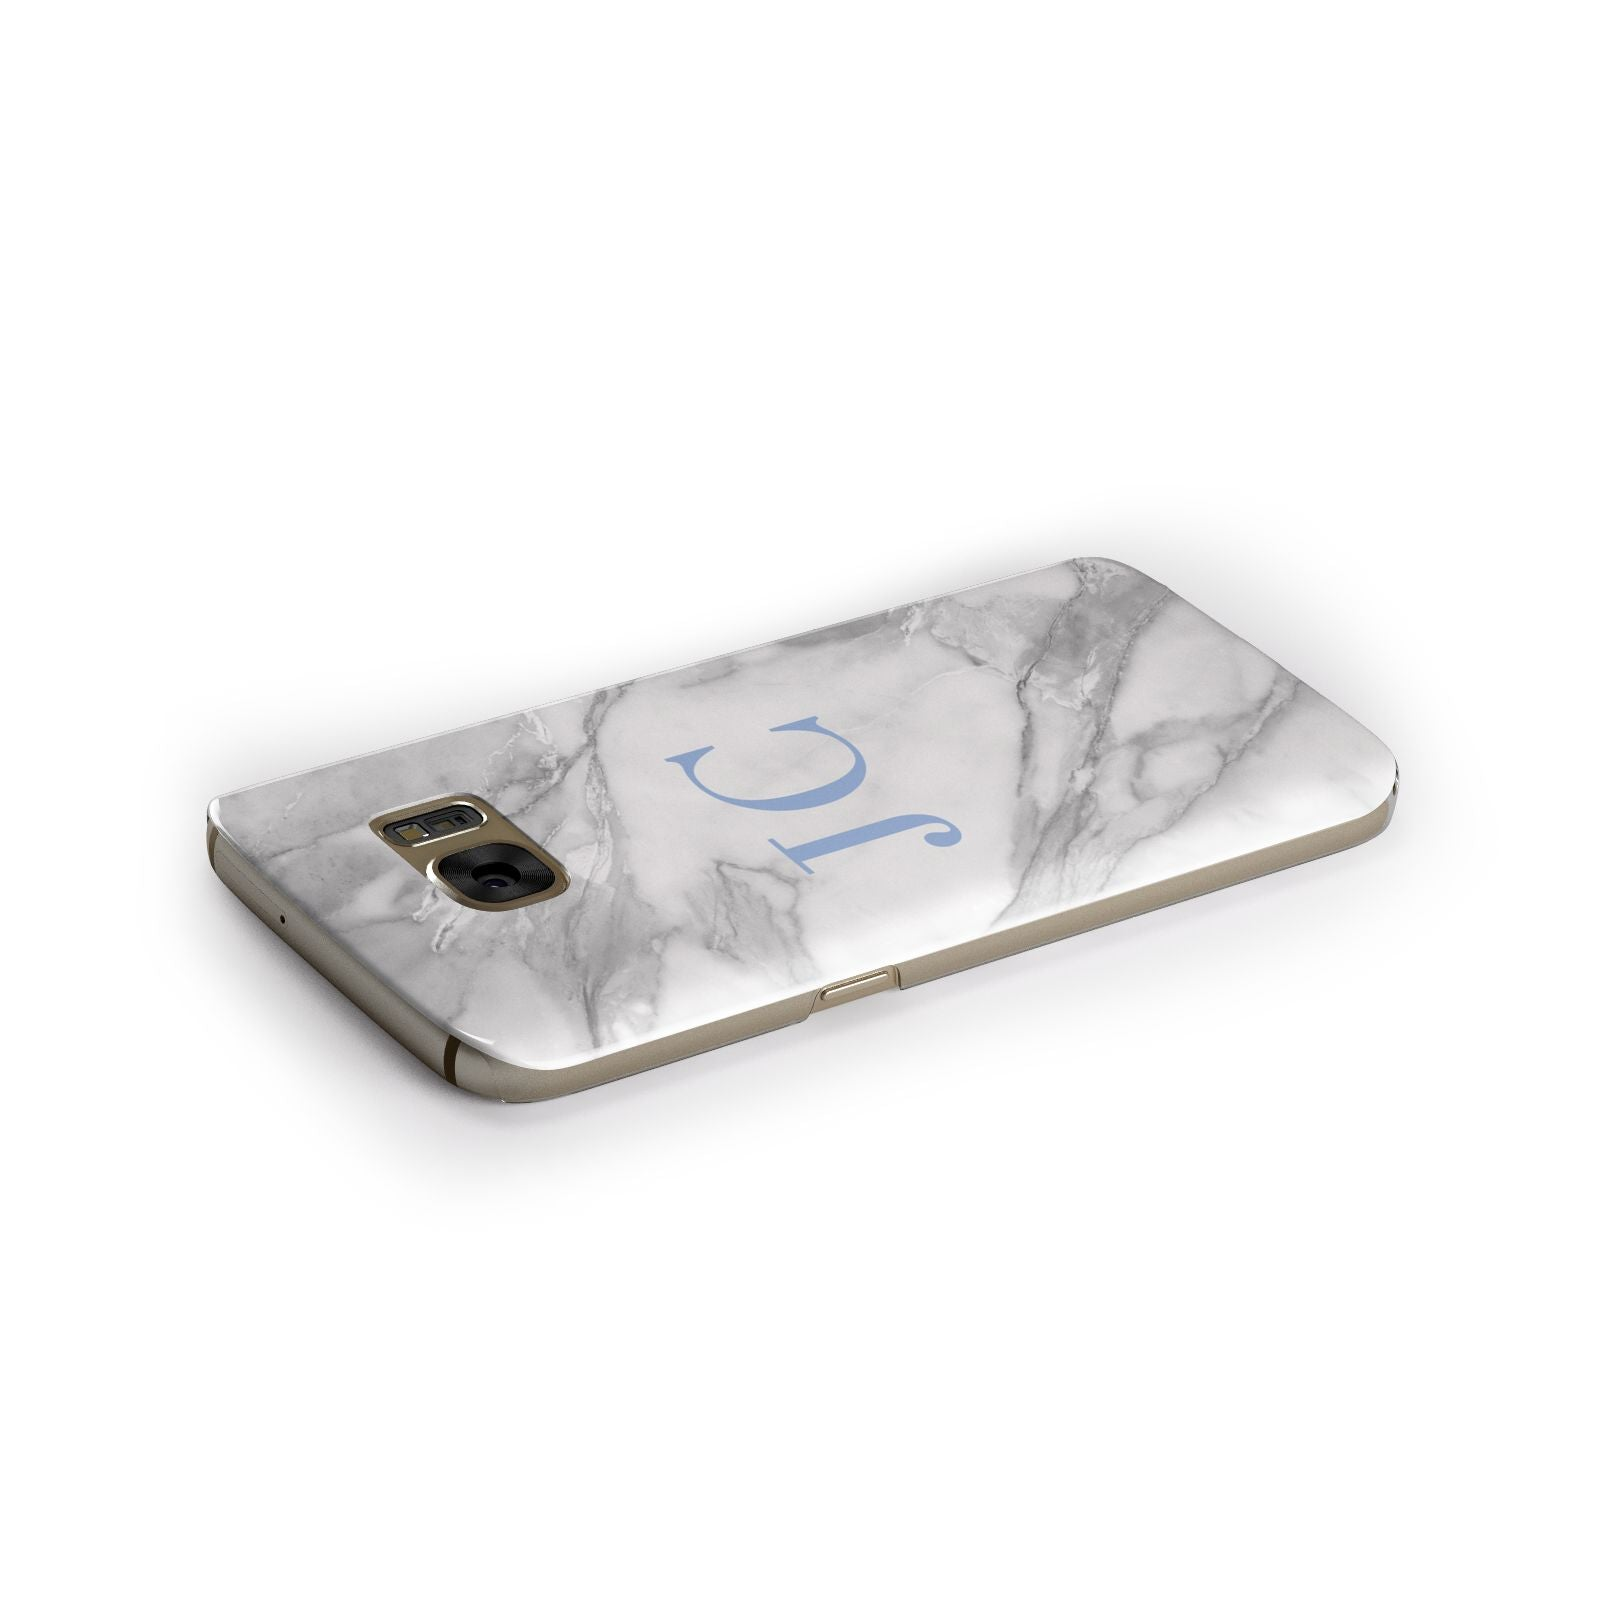 Grey Marble Blue Initials Samsung Galaxy Case Side Close Up